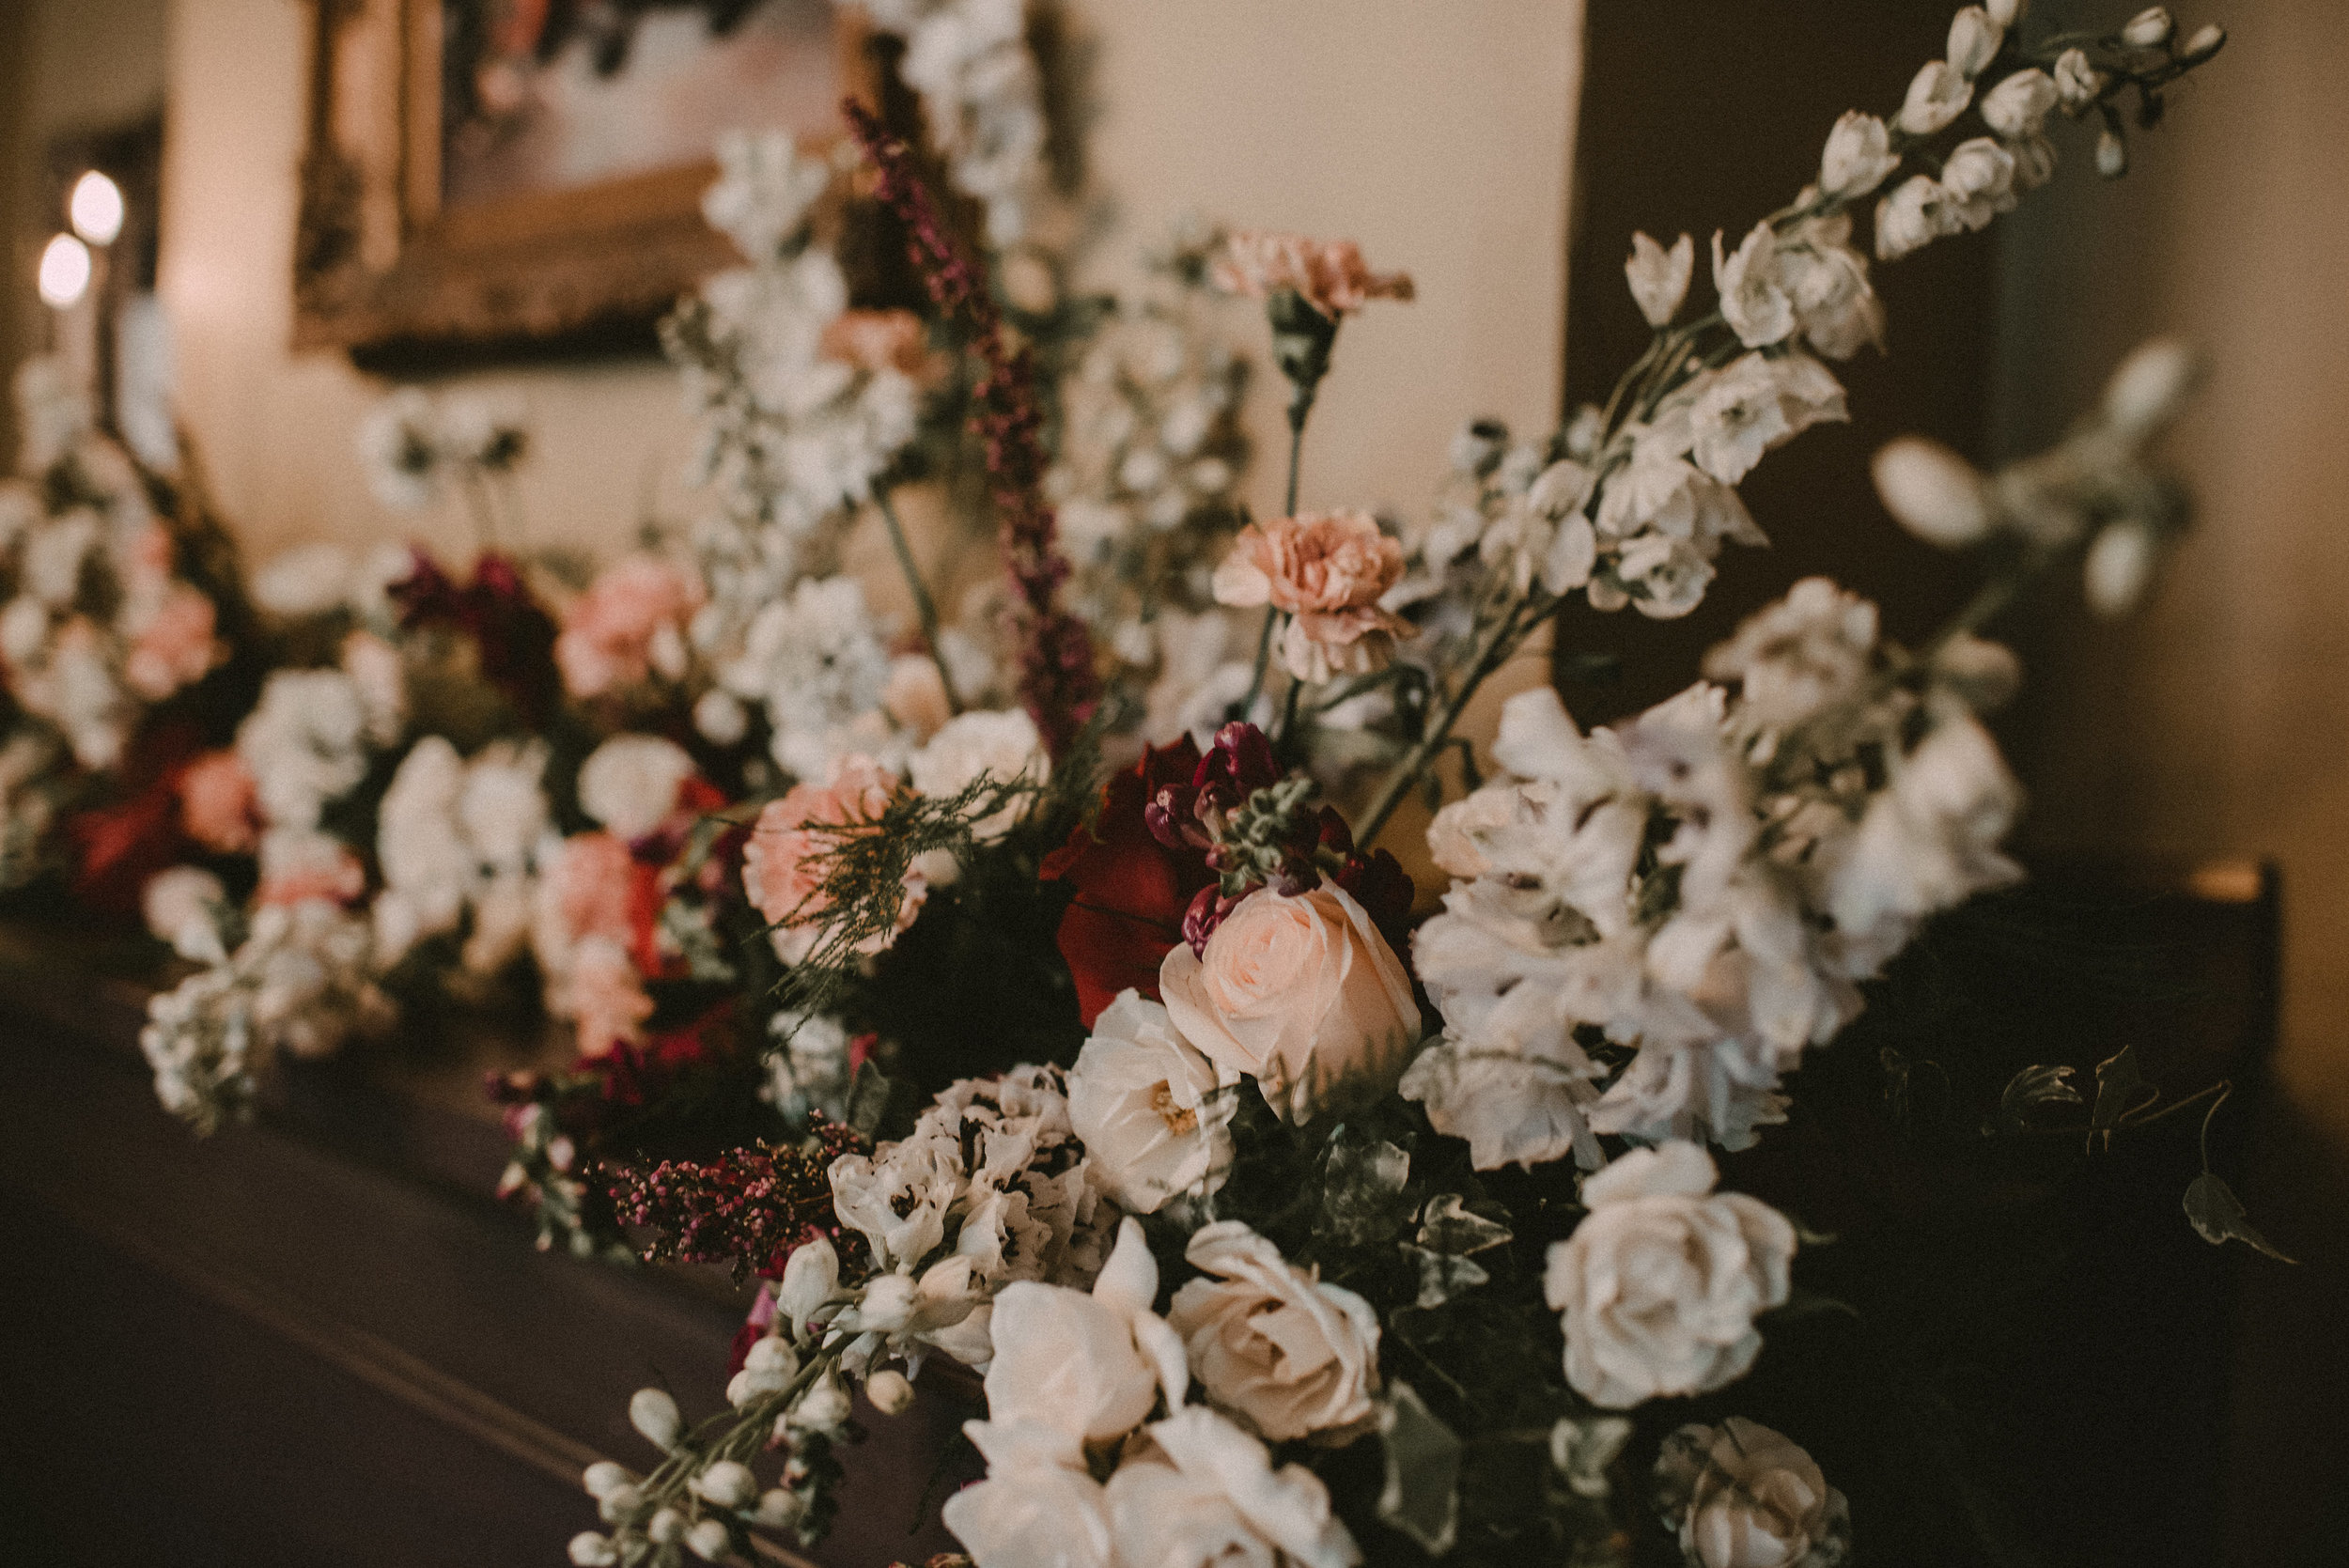 Harry Potter Themed Wedding - Floral Fireplace